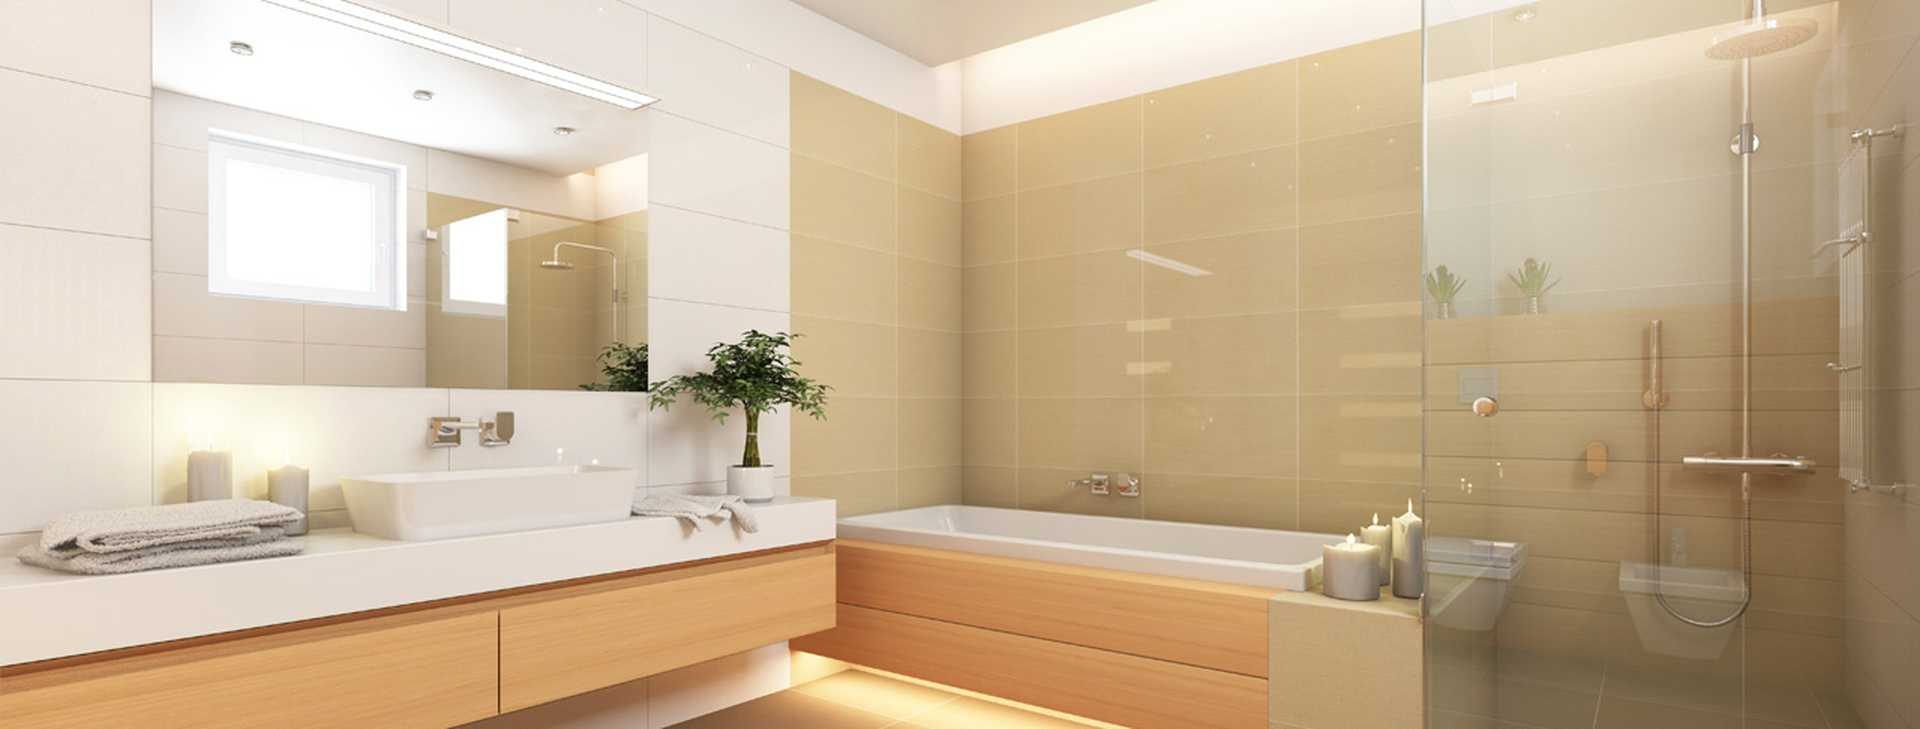 Internal Waterproofing Solutions For Residential Construction